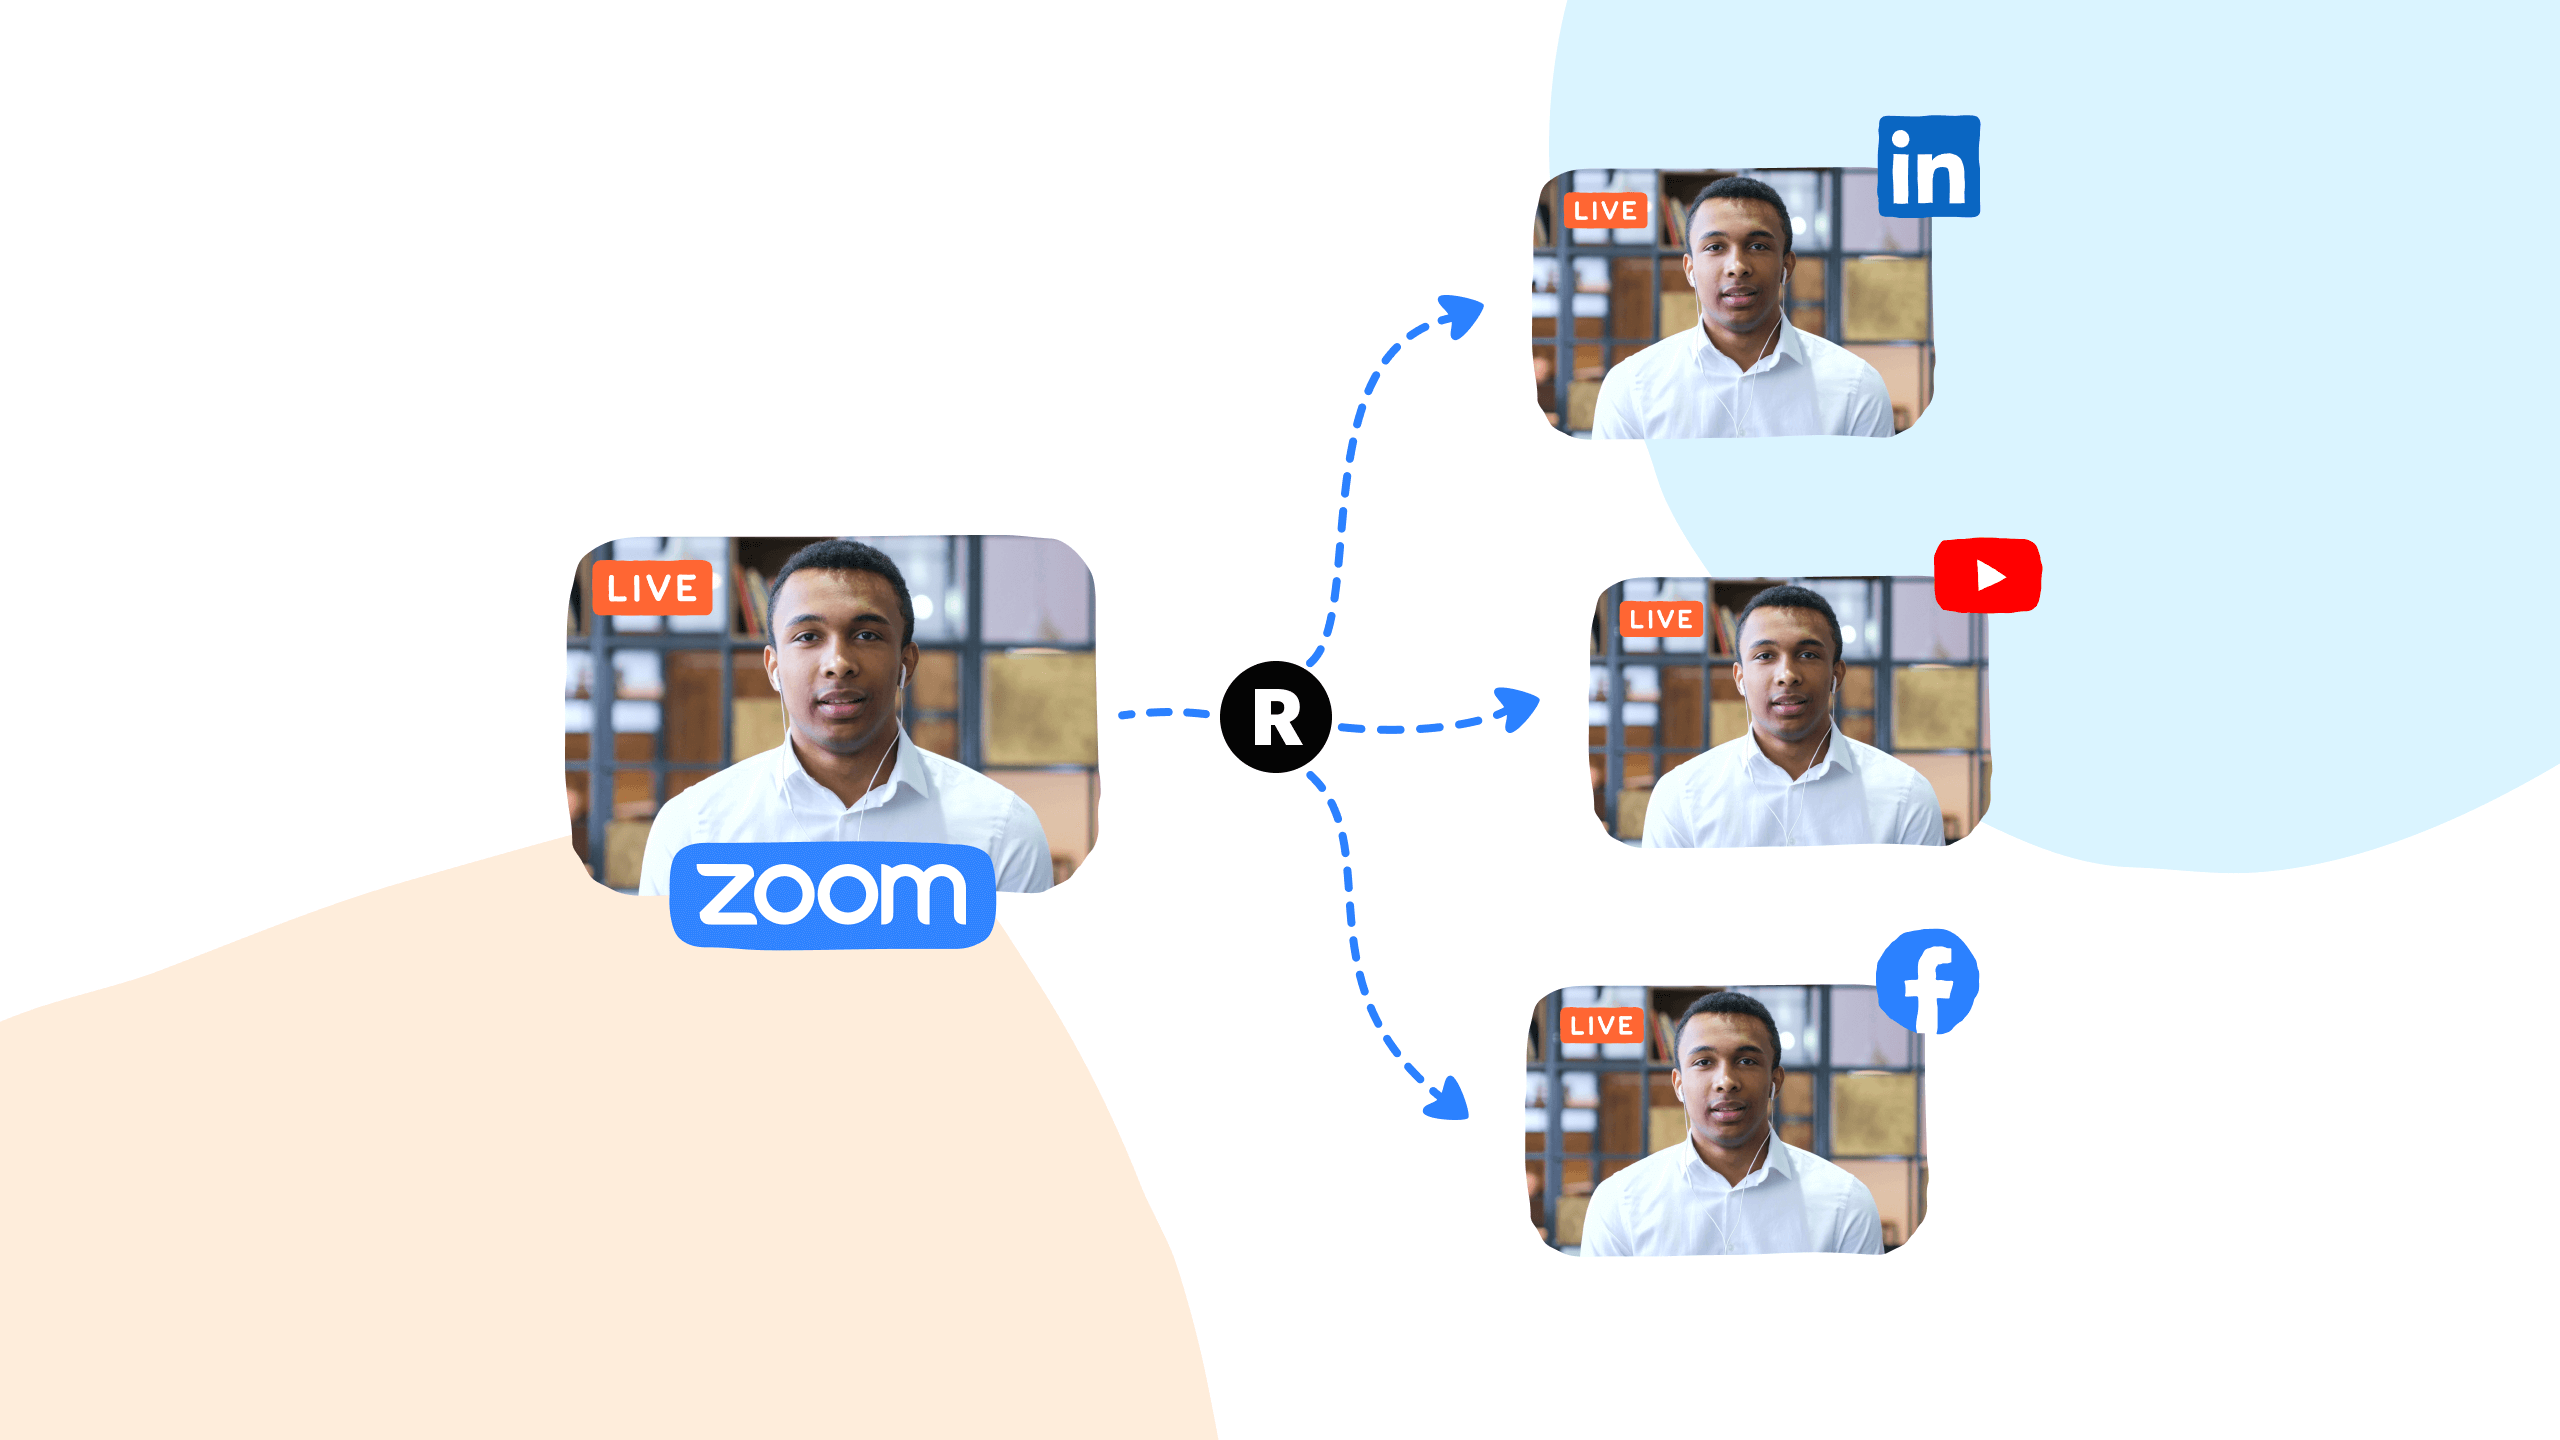 Live streaming meetings and webinars using Zoom and Restream